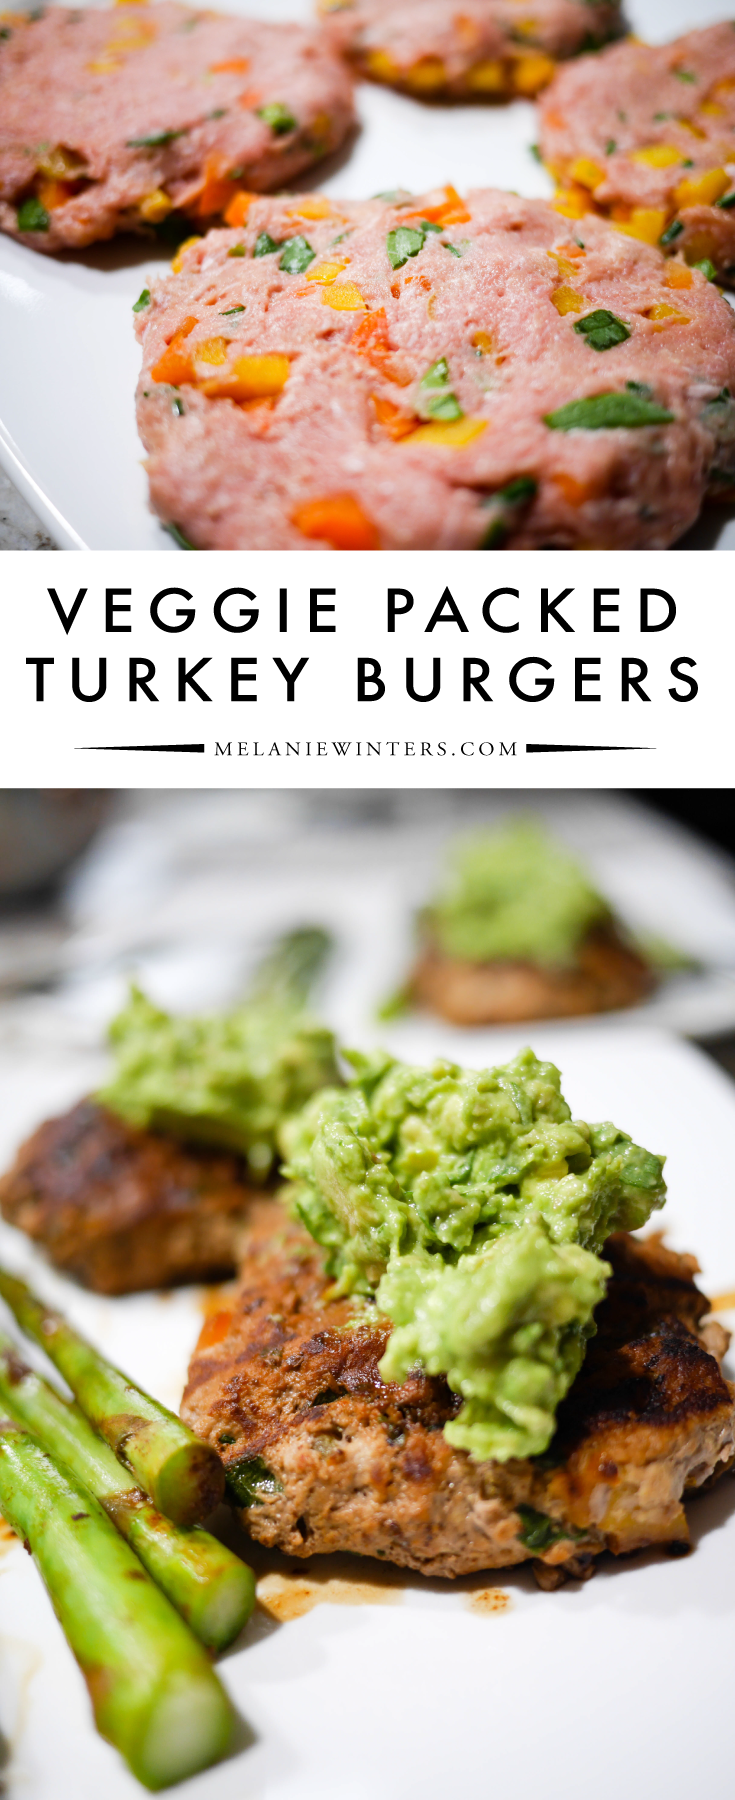 Packed with veggies, these turkey burgers are full of fresh flavors and an ideal low carb summer dinner.